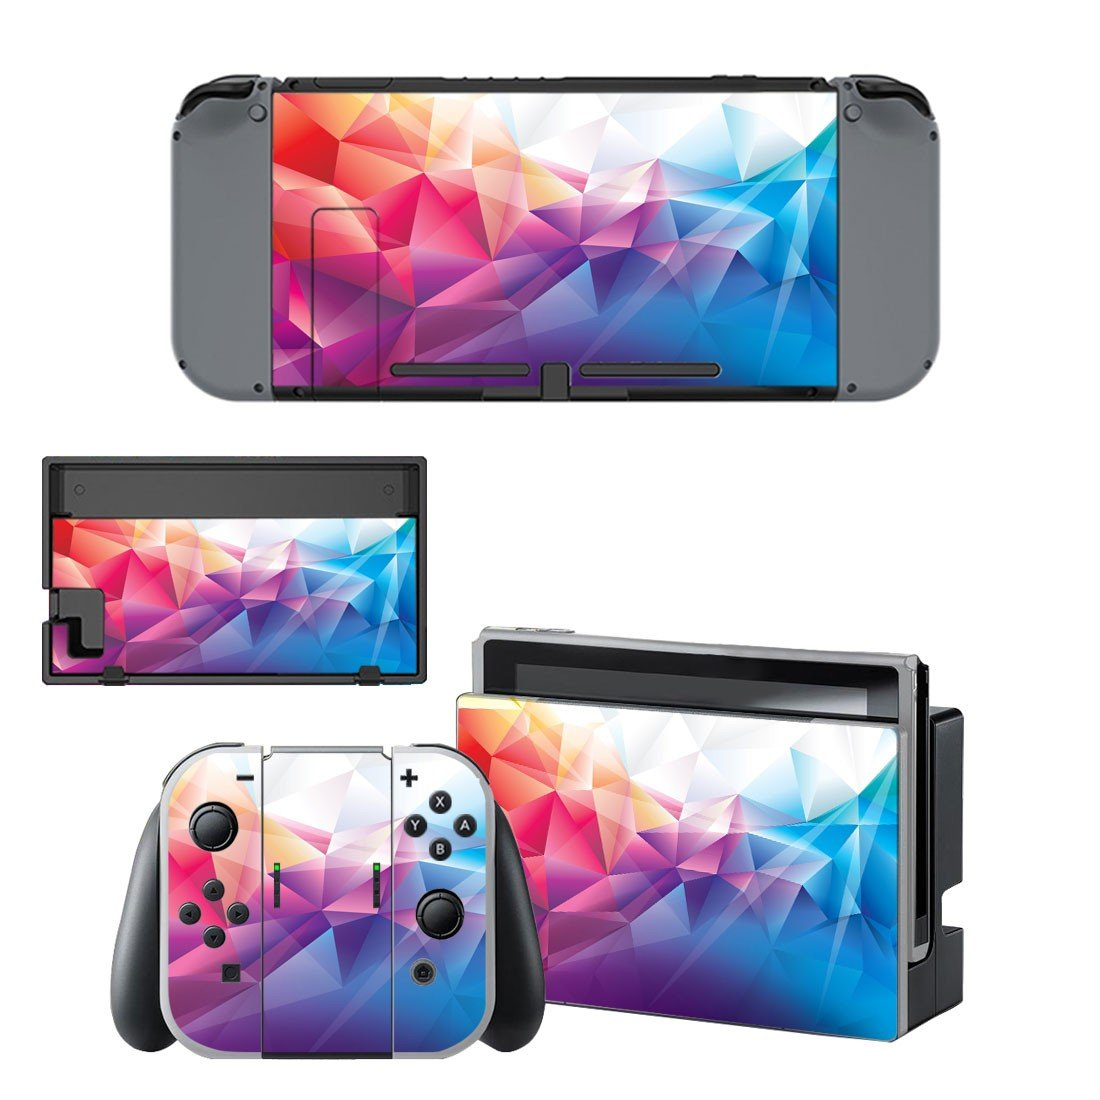 Geomatric pattern decal for Nintendo switch console sticker skin